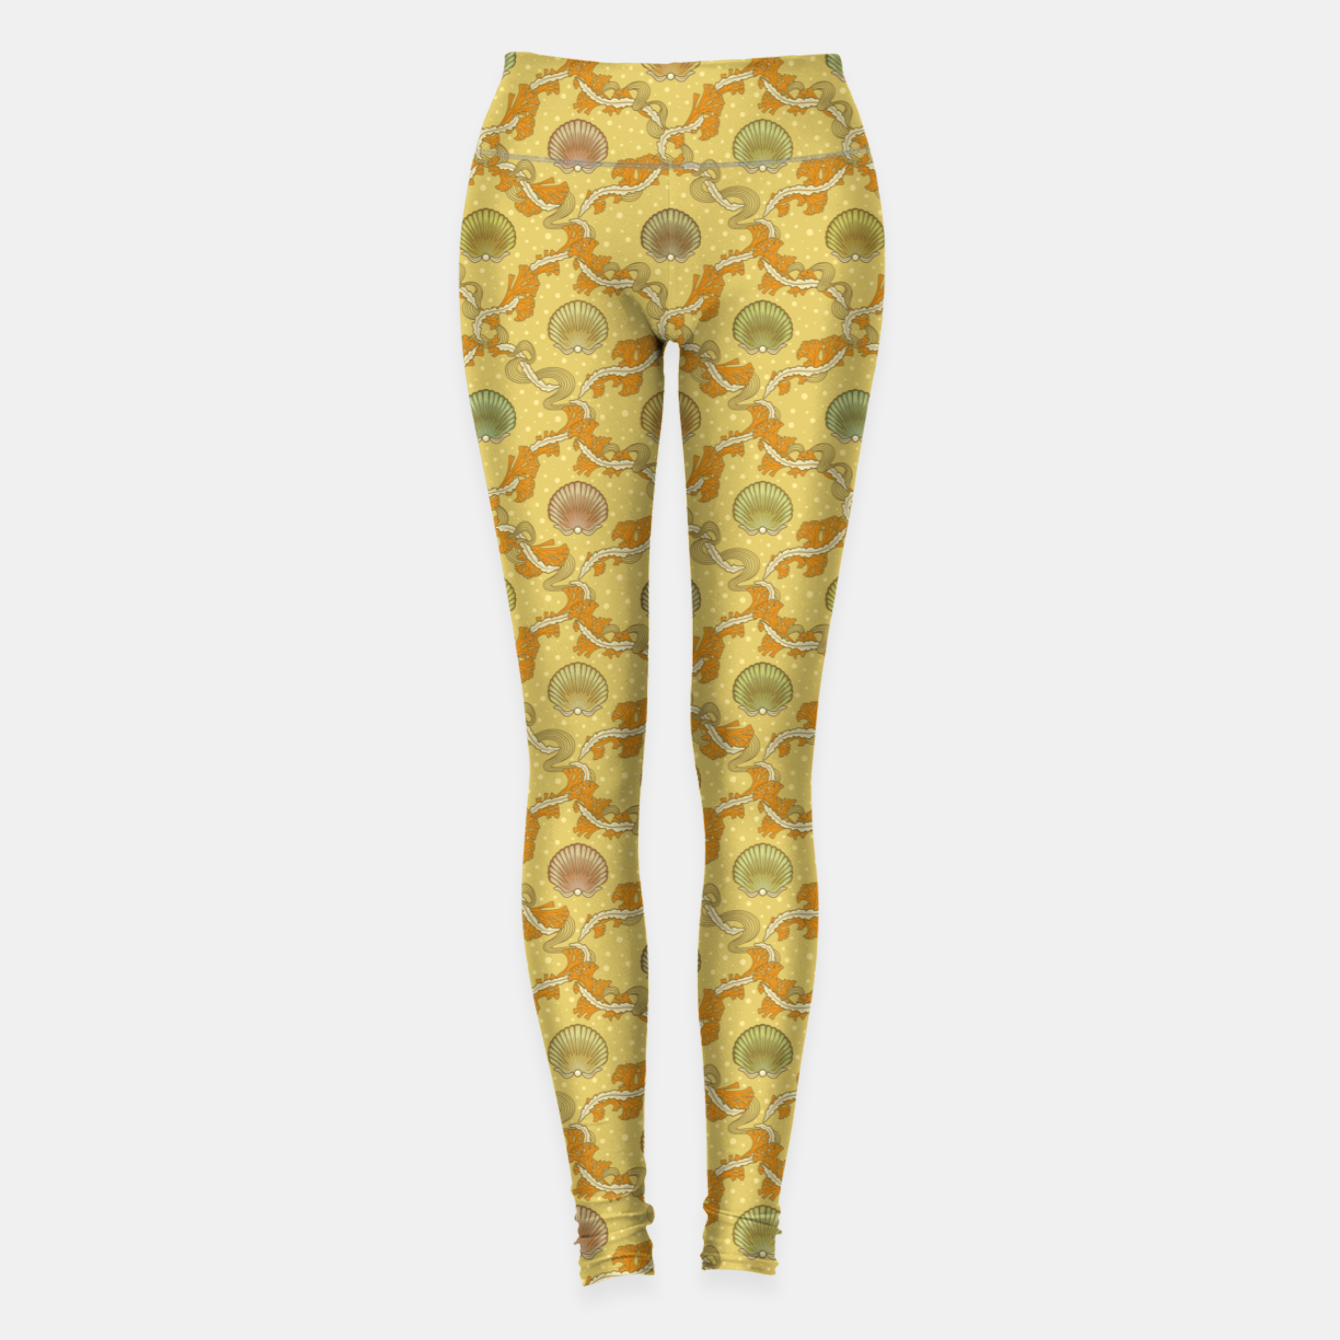 Image of The elegant grace of nature: scallop shells and sea weeds Leggings - Live Heroes